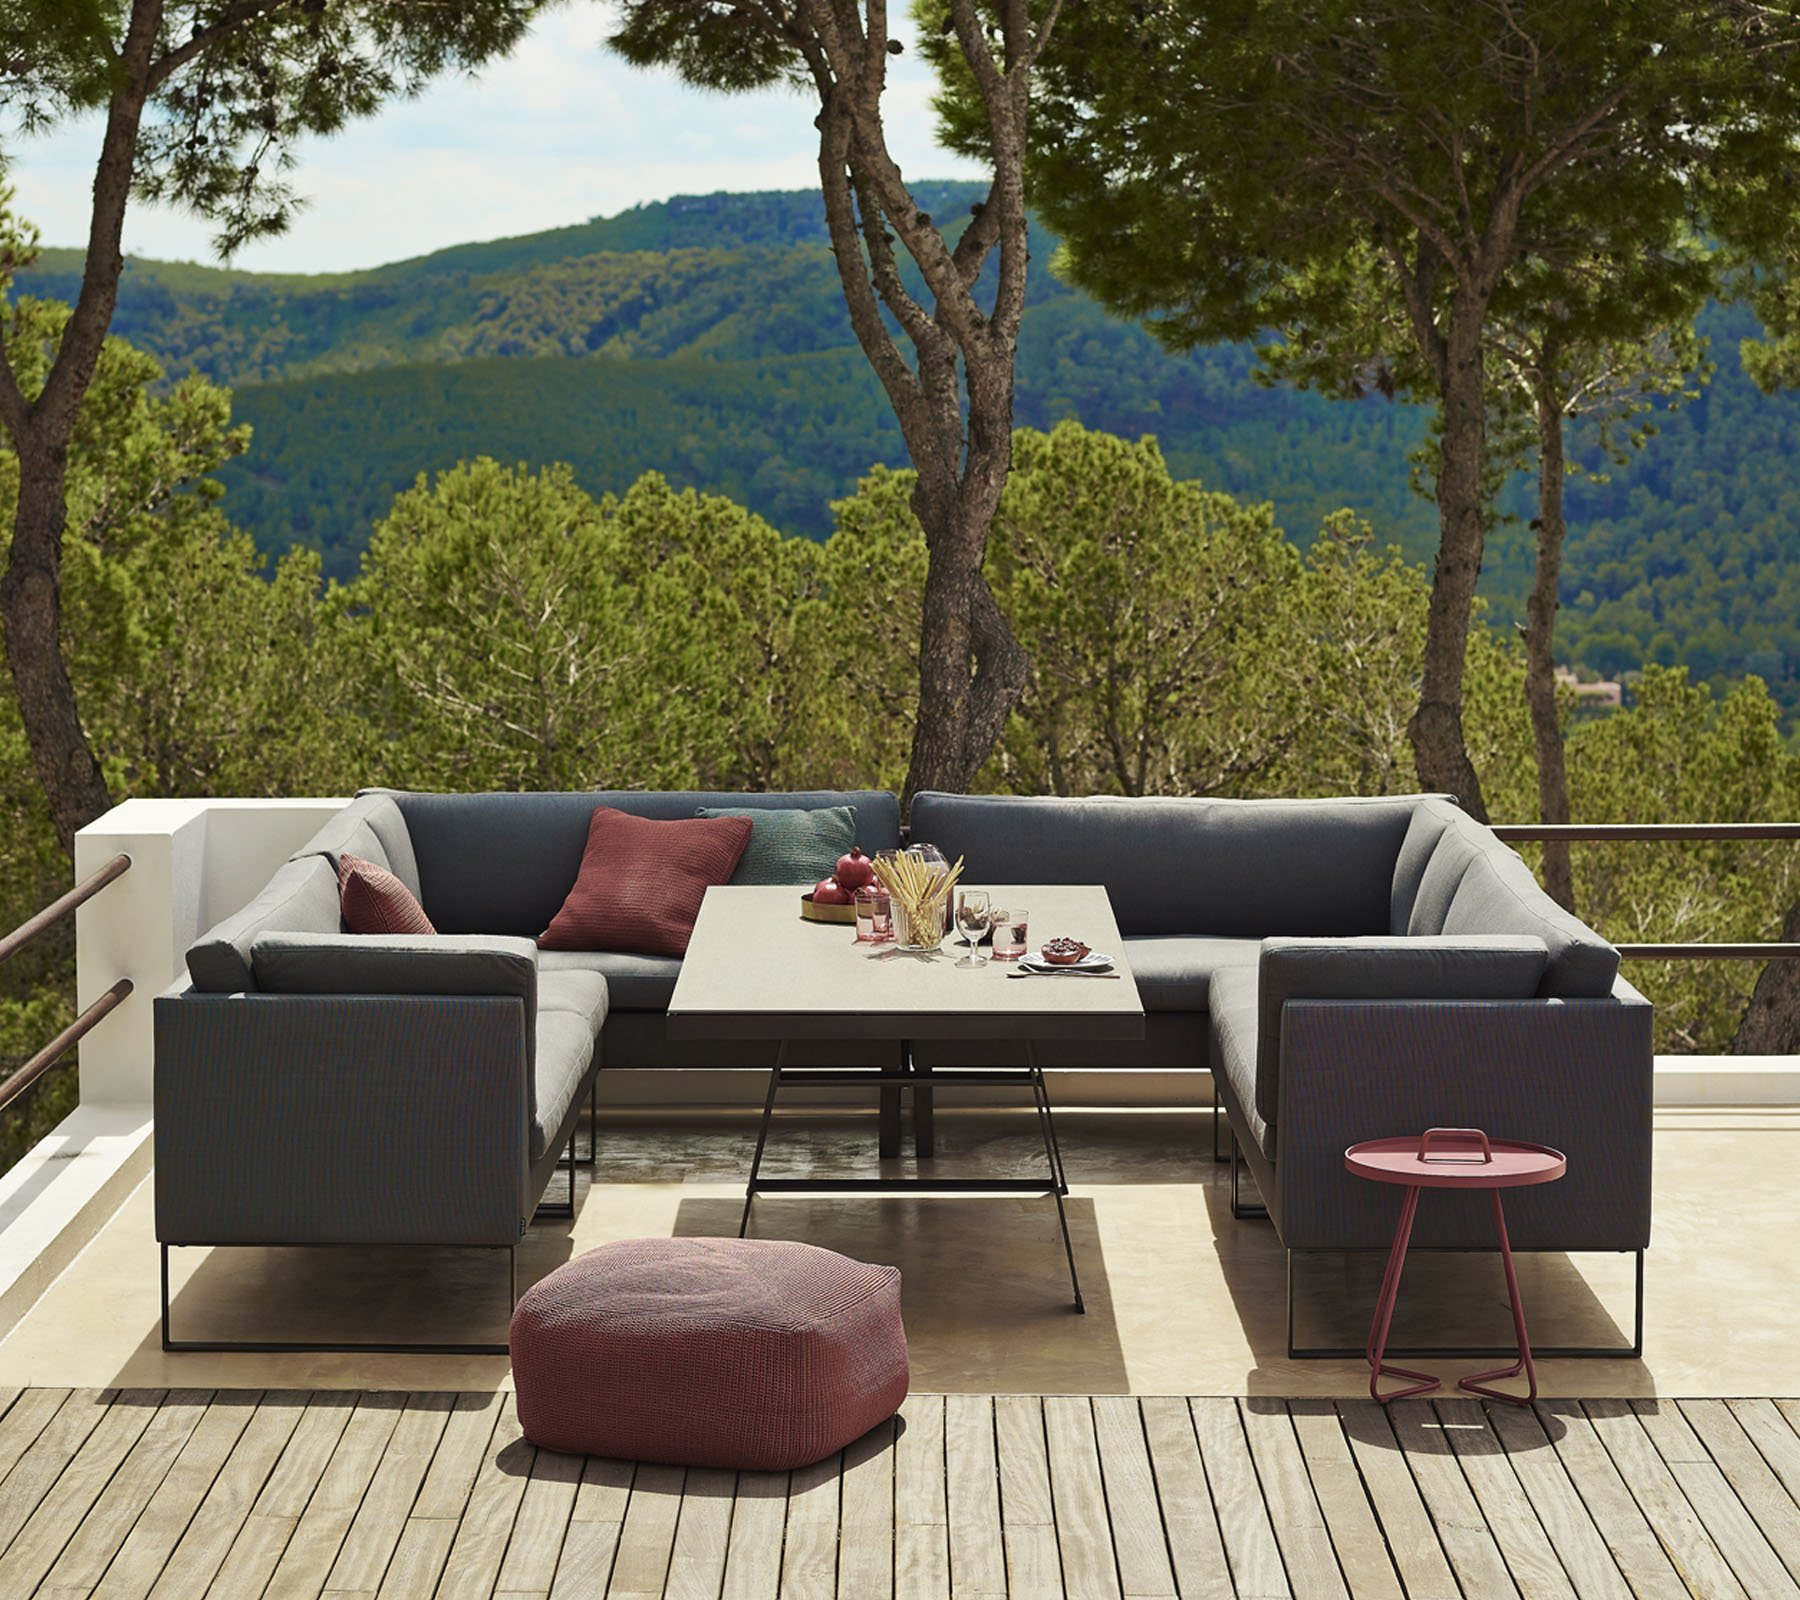 Flex 2 Seat Right Module Sofa modular from Cane-line, designed by Cane-line Design Team